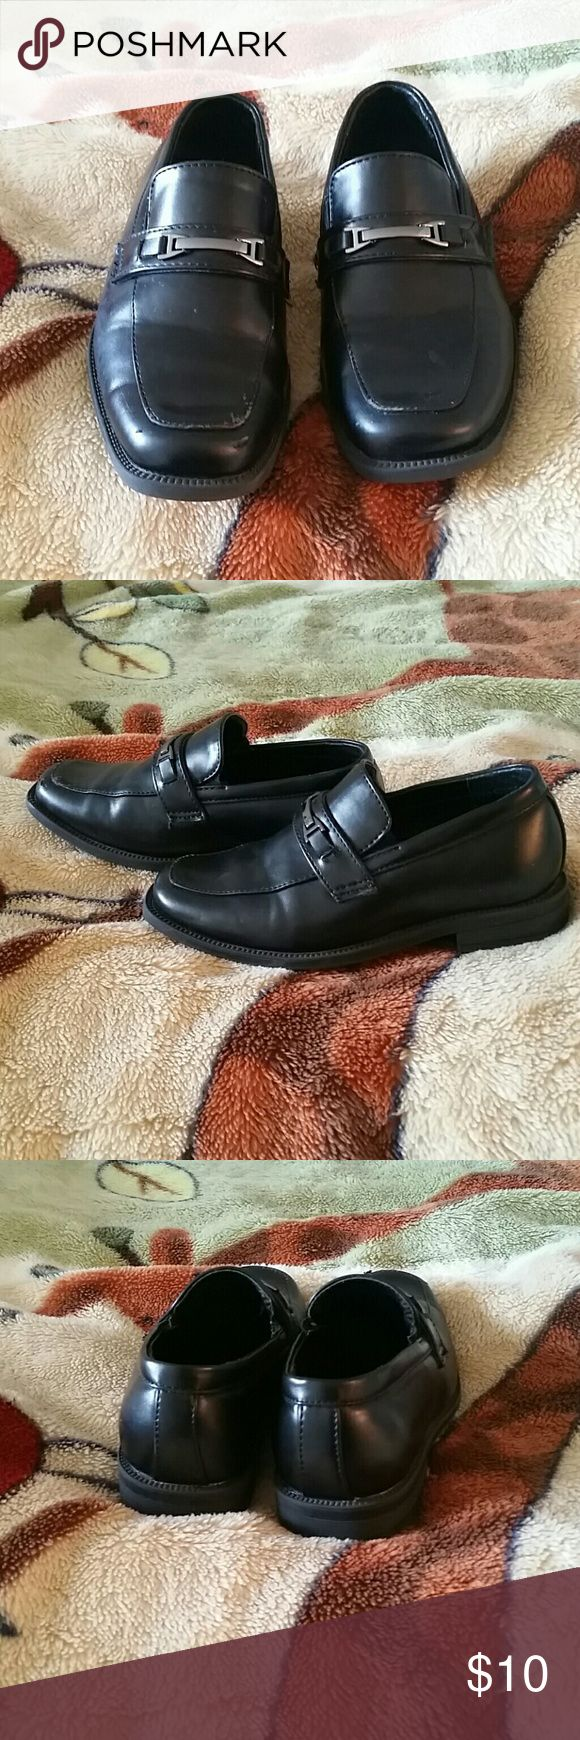 Black Perry Ellis Dress Shoes Black dress shoes with silver buckle. Worn a handful of times. Normal wear and tear at front for a toddler. Perry Ellis Shoes Dress Shoes